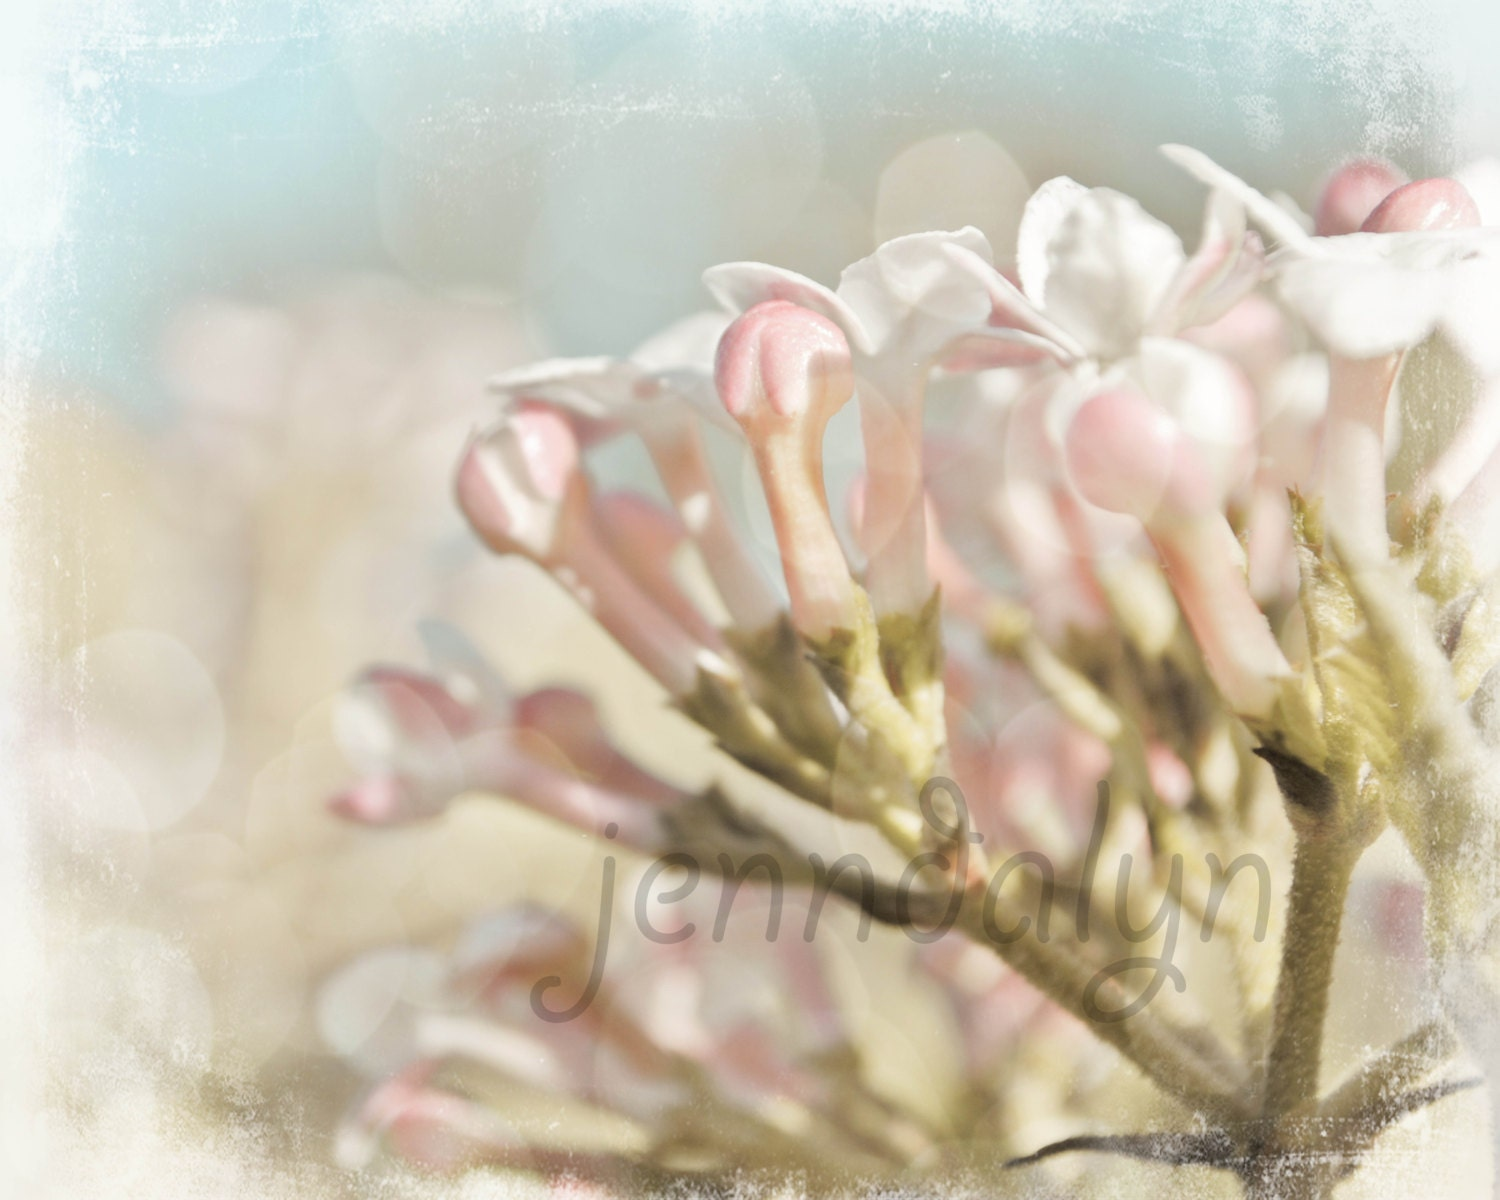 Arabesque I - PHOTO, baby pink, aqua blue, nursery decor, cherry blossom photo, spring photography, pale blue, baby girl, pastel colors - Jenndalyn